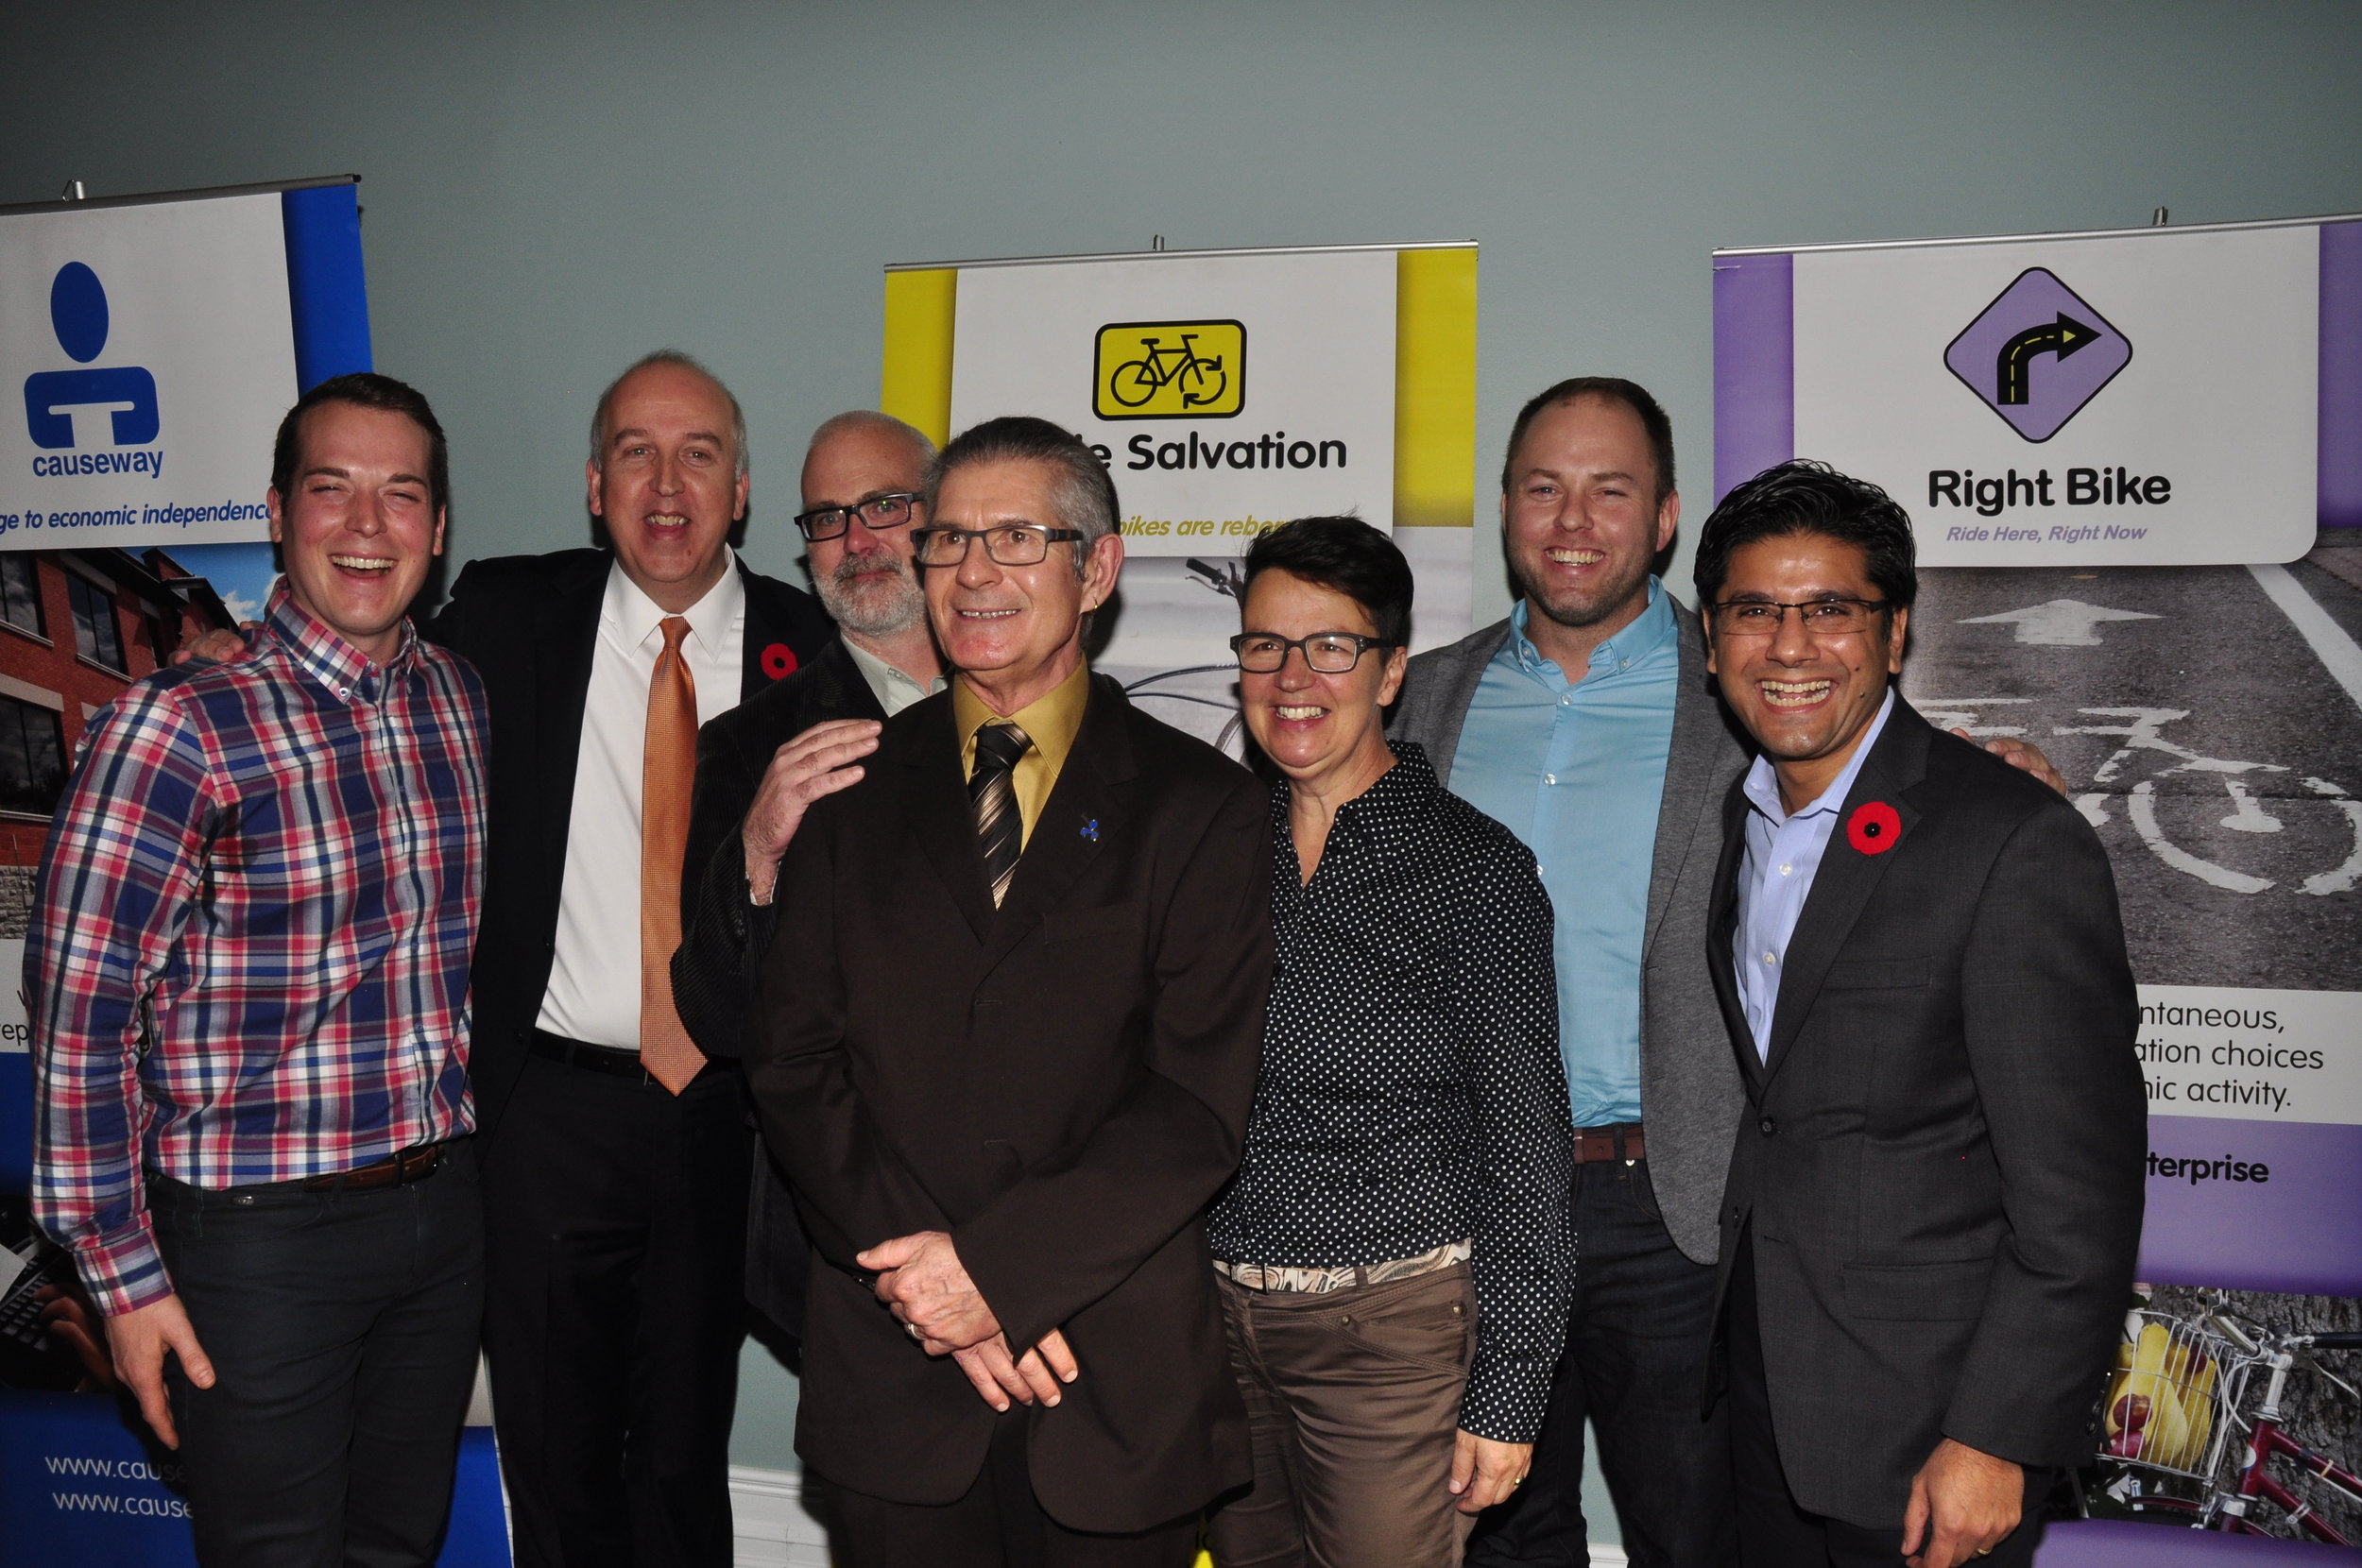 At the launch of the Causeway Community Finance Fund . (Pictured Above, L-R: Mathieu Fleury, Rob Paterson, Jeff Leiper, Don Palmer, Catherine McKenney, Doug Pawson, Yasir Naqvi. To read more about the launch, check out the following articles. [1] )